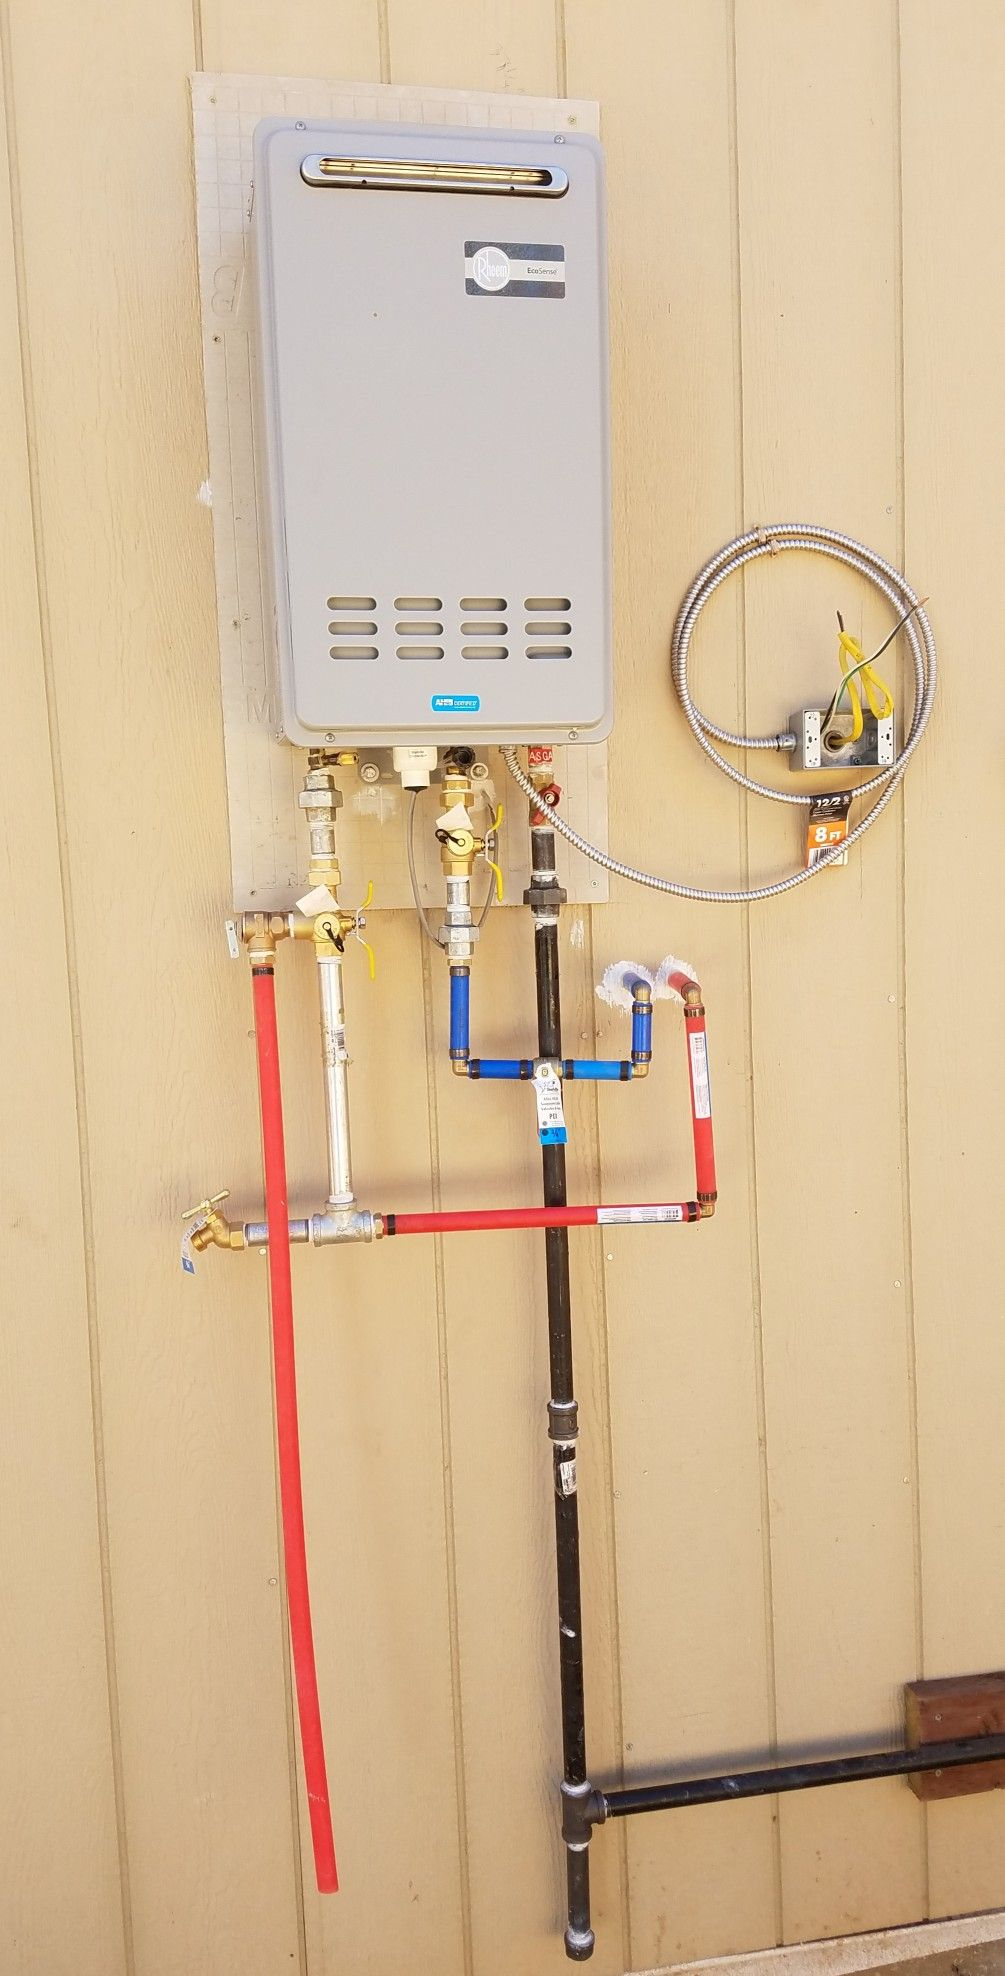 Pin By Raymond Vargas On Fnshandyman Exterior Instant Hot Water Heater Water Heater Home Appliances Hot Water Heater